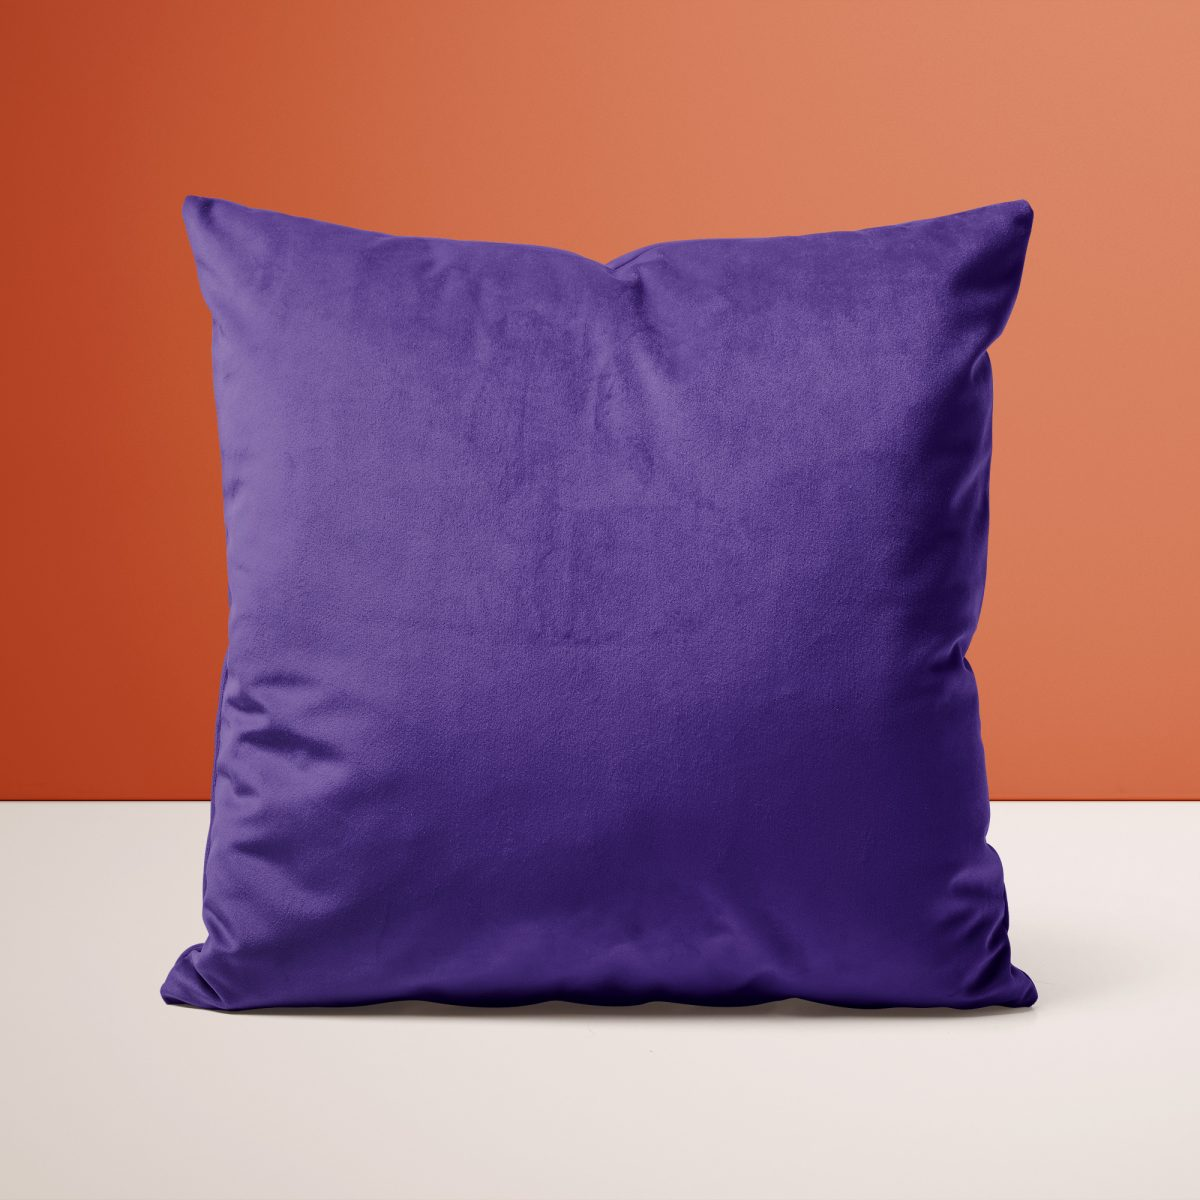 lilac-covers-of-the-rainbow-1